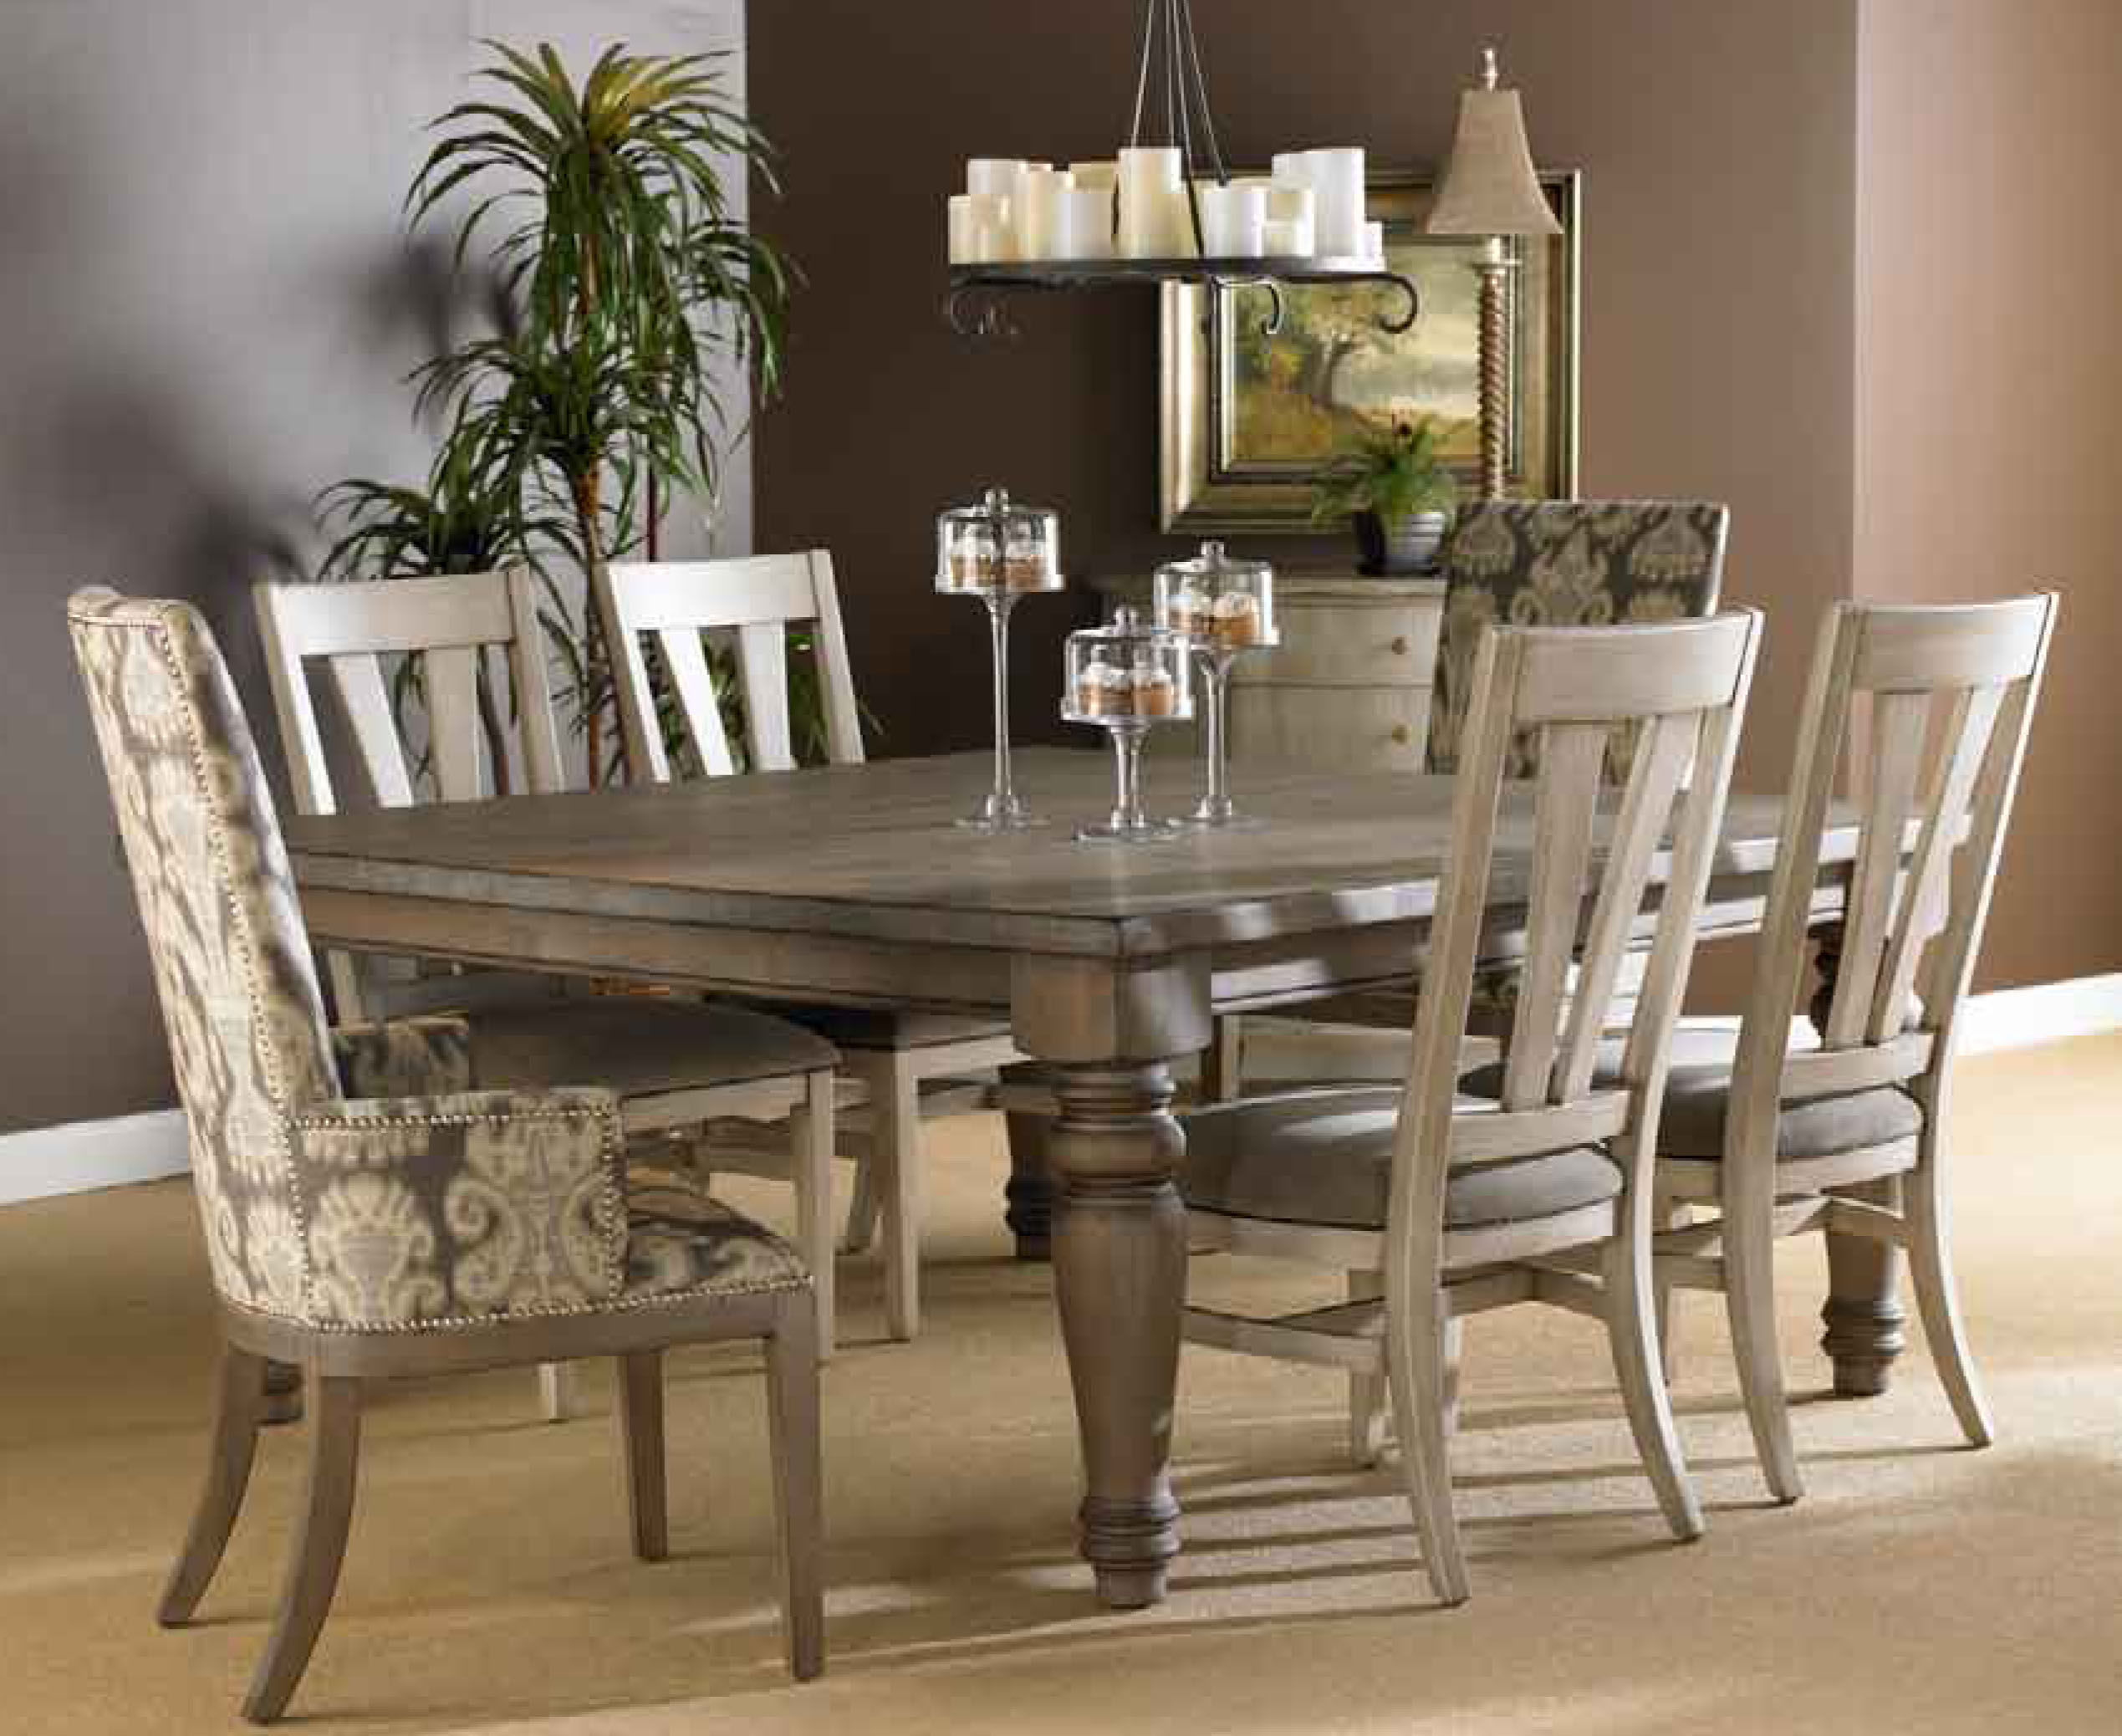 Trend alert Gray Day 1 : gray dining table from lorts.wordpress.com size 2538 x 2076 jpeg 514kB